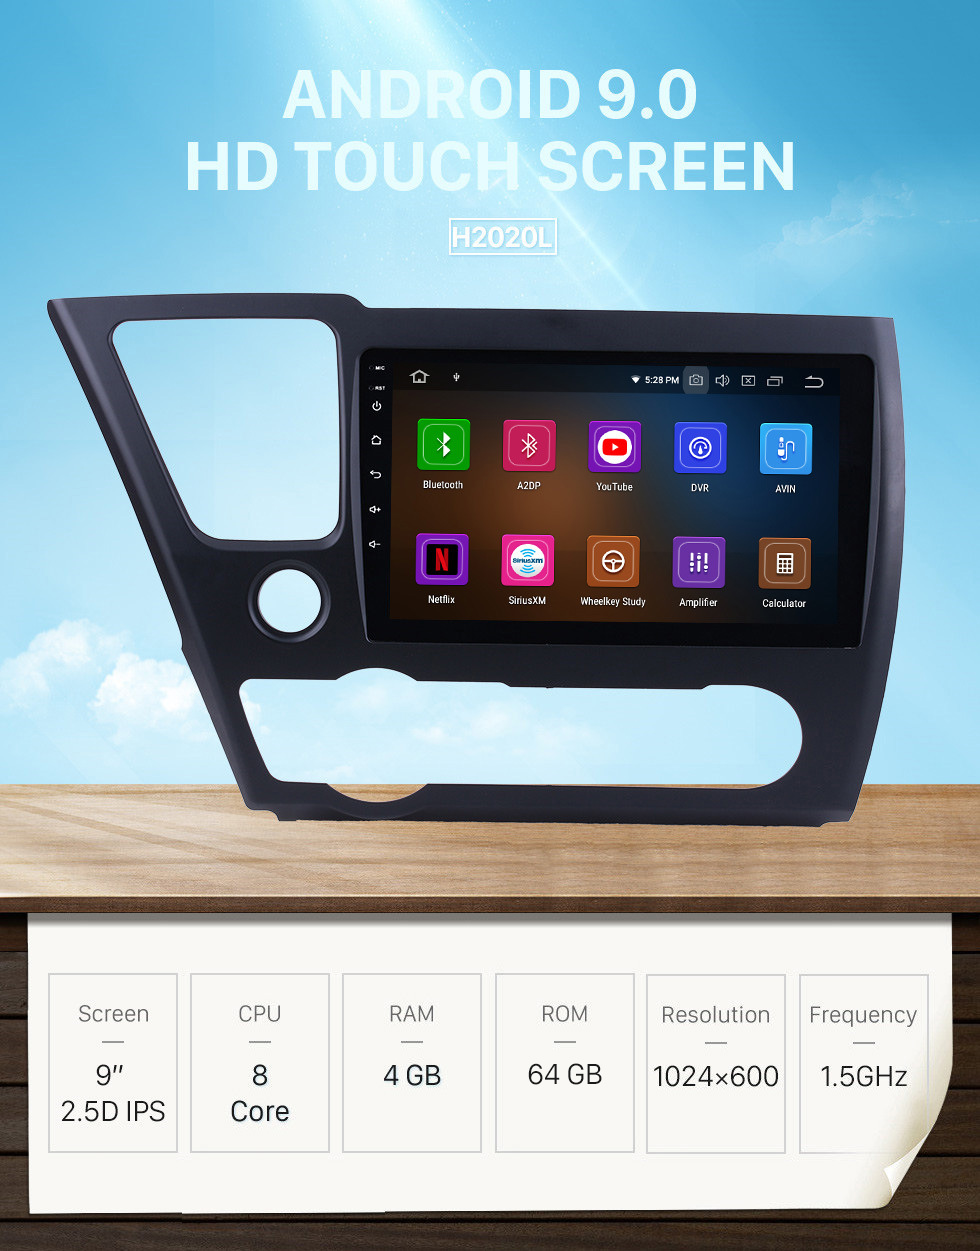 Seicane HD Touchscreen GPS navigation Android 9.0 radio for 2014 2015 2016 2017 Honda Civic (LHD) American Version TV Bluetooth Music Phone USB Carplay WIFI SWC